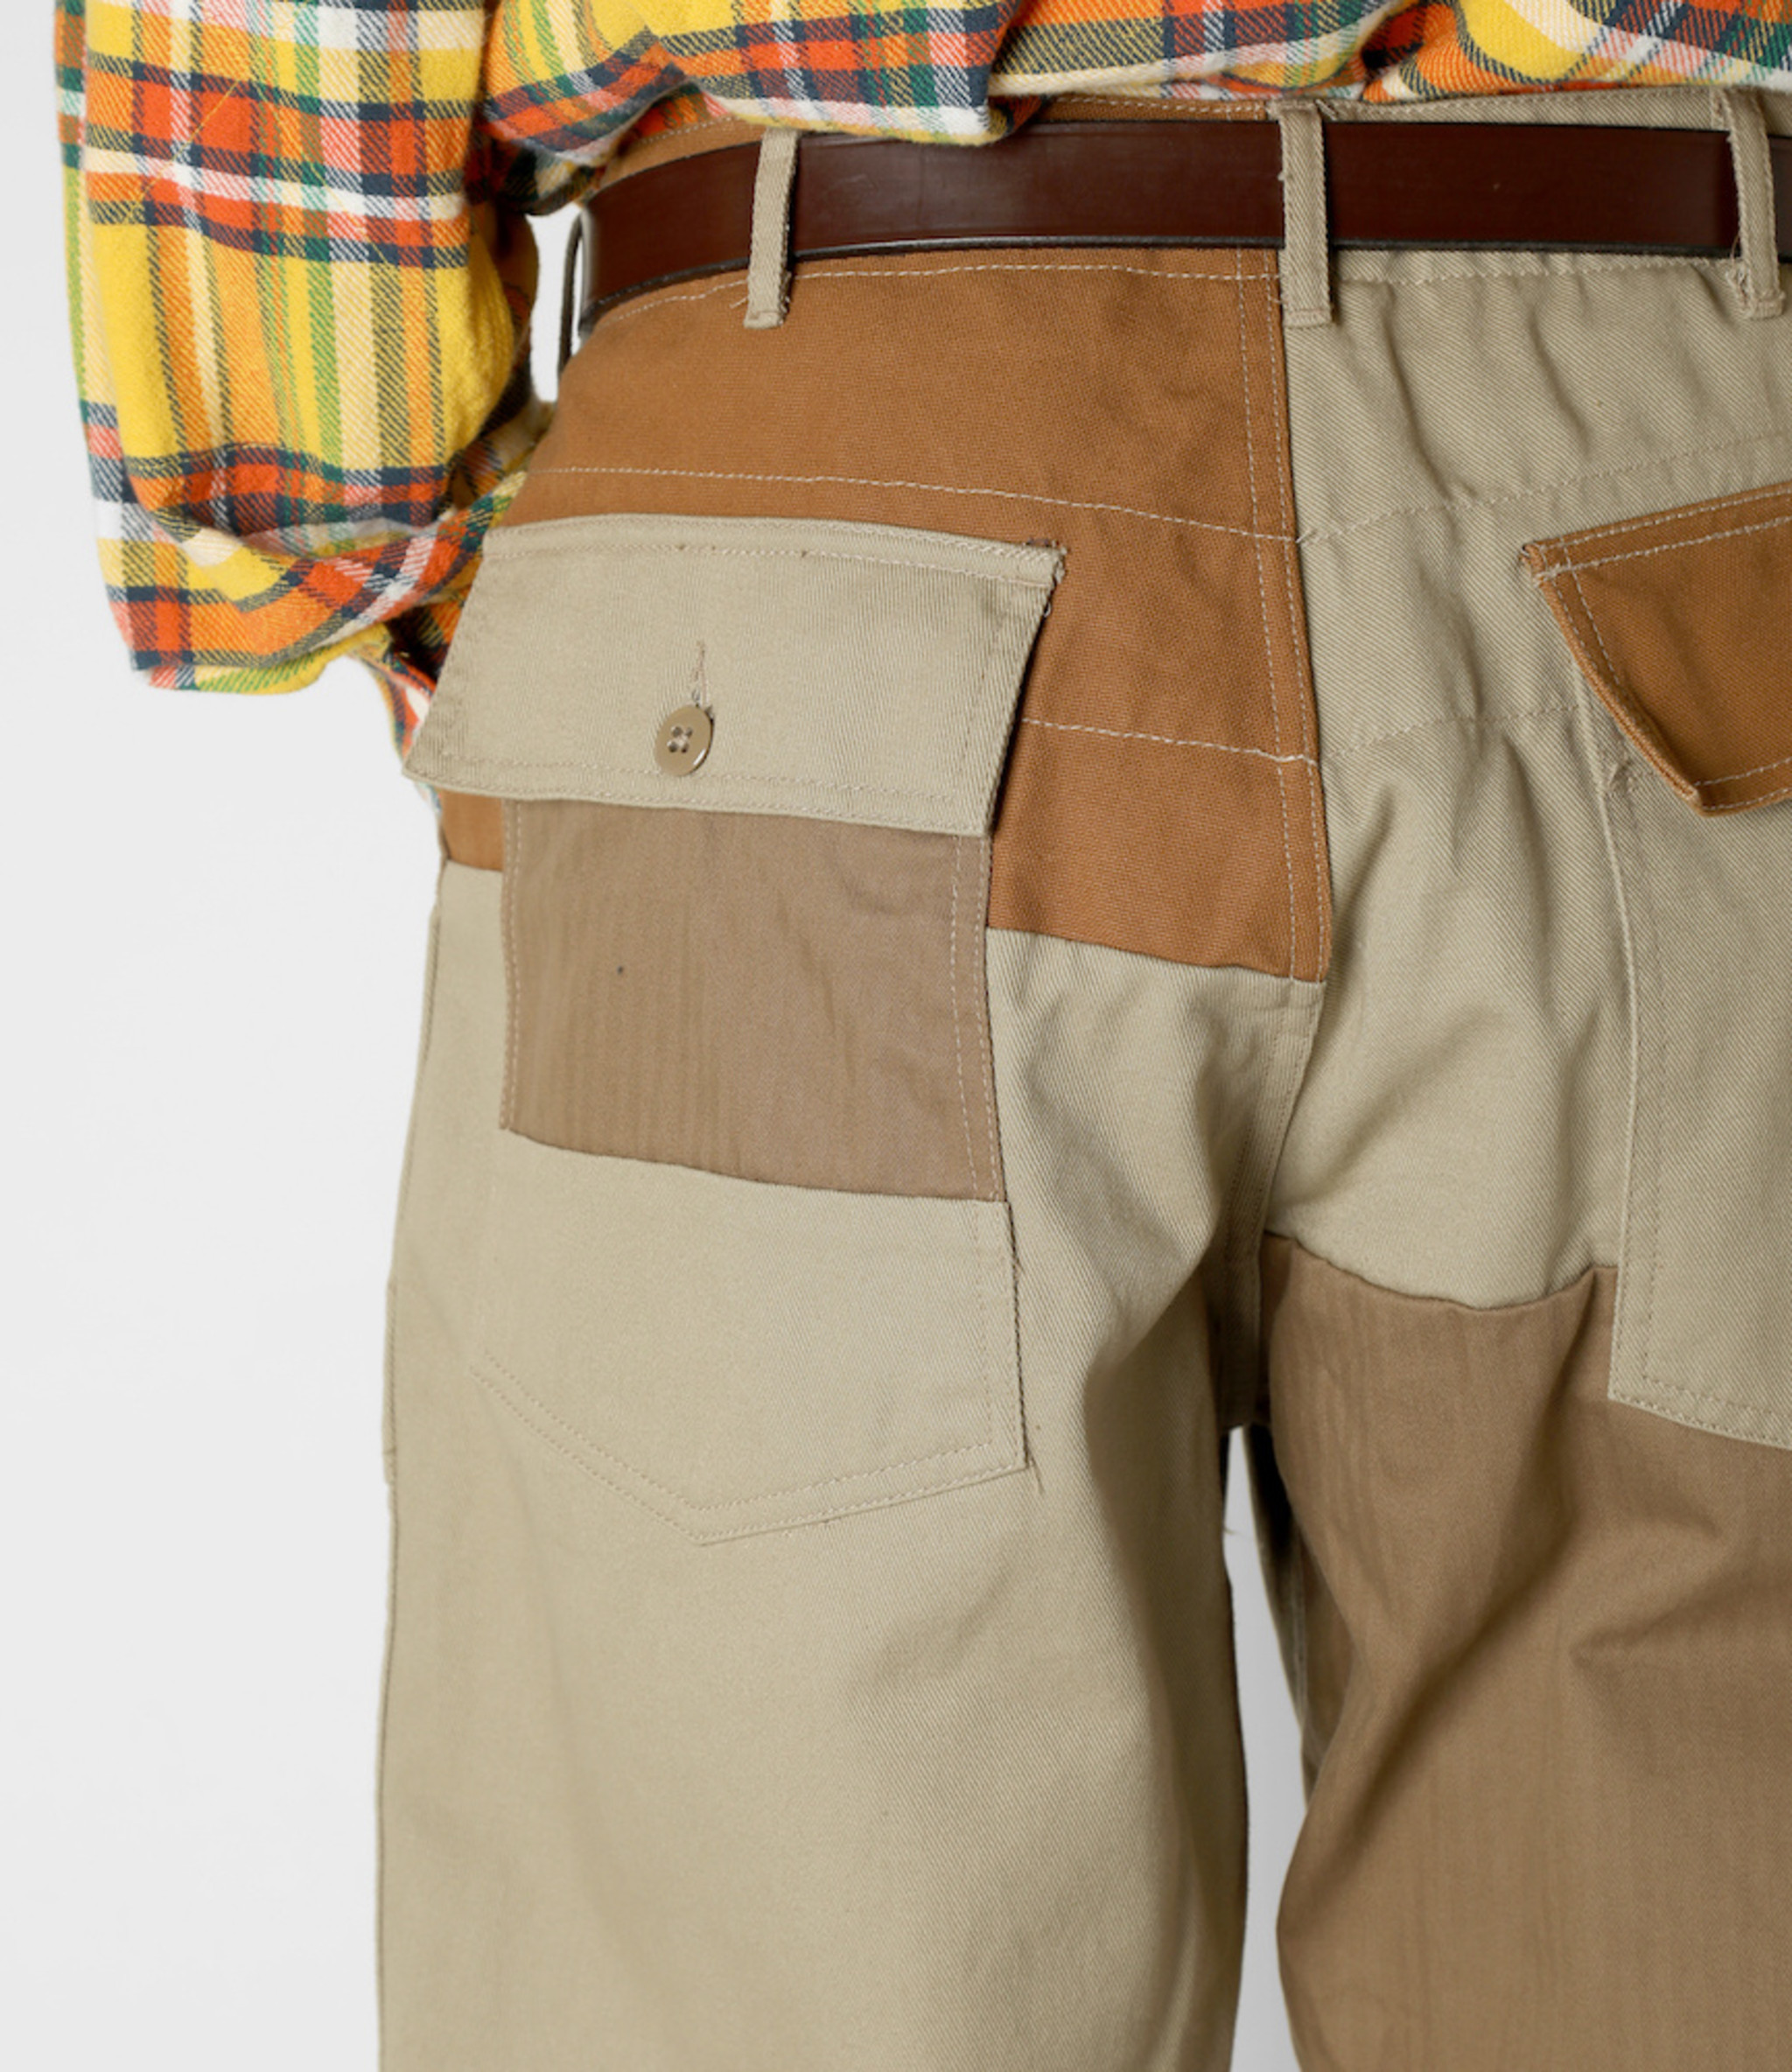 Engineered Garments Fatigue Pant - Khaki Cotton Heavy Twill